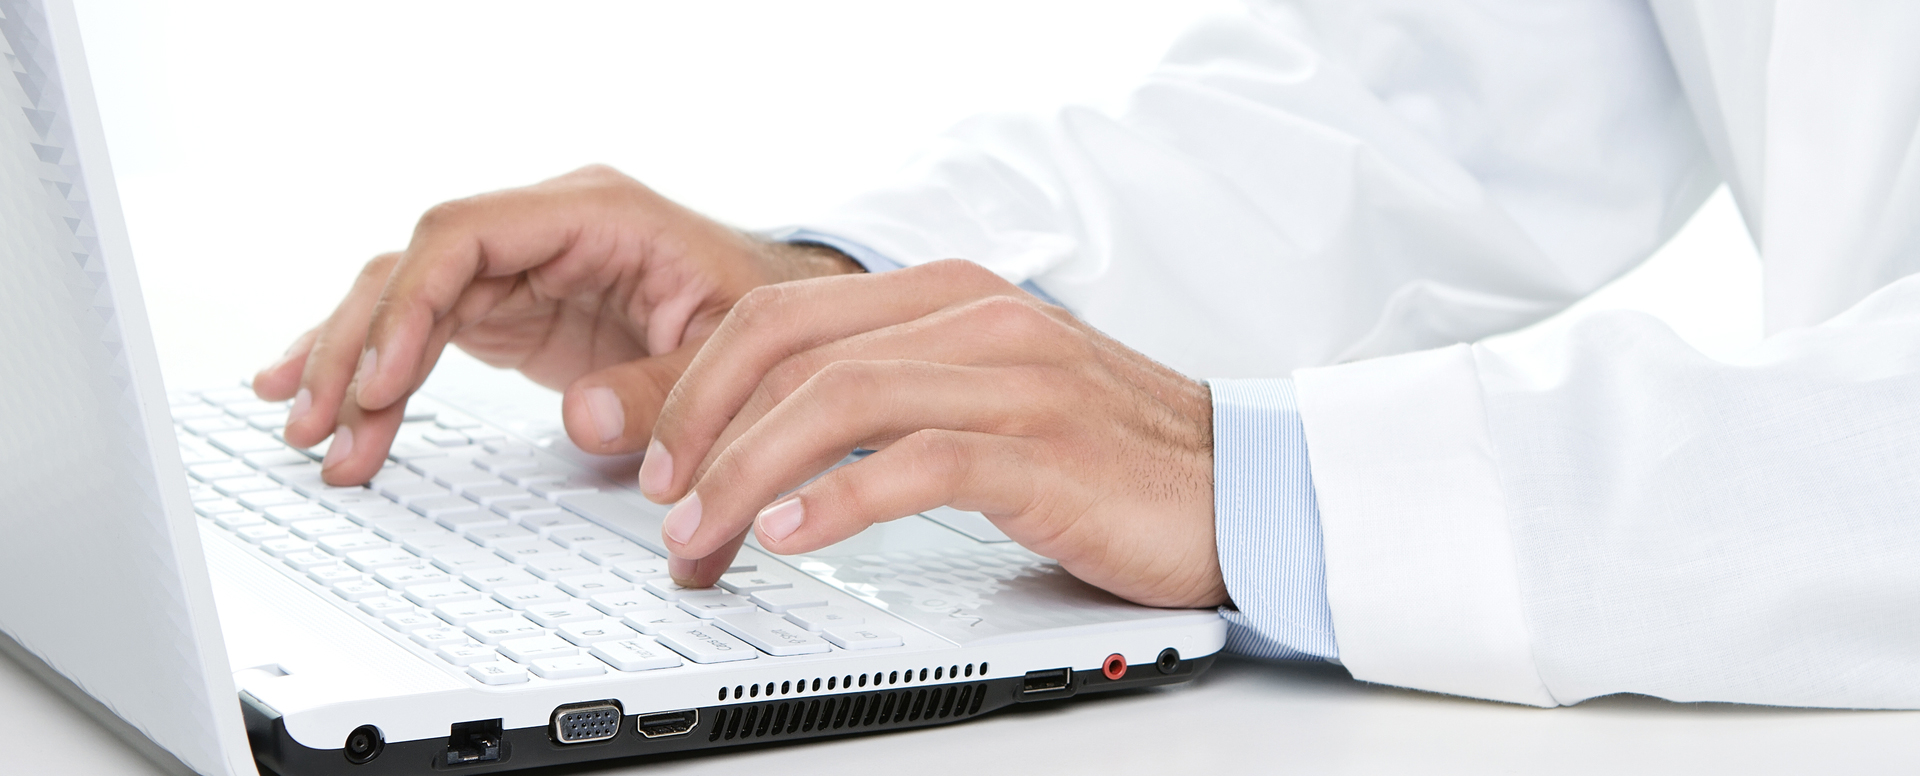 Practitioner using computer